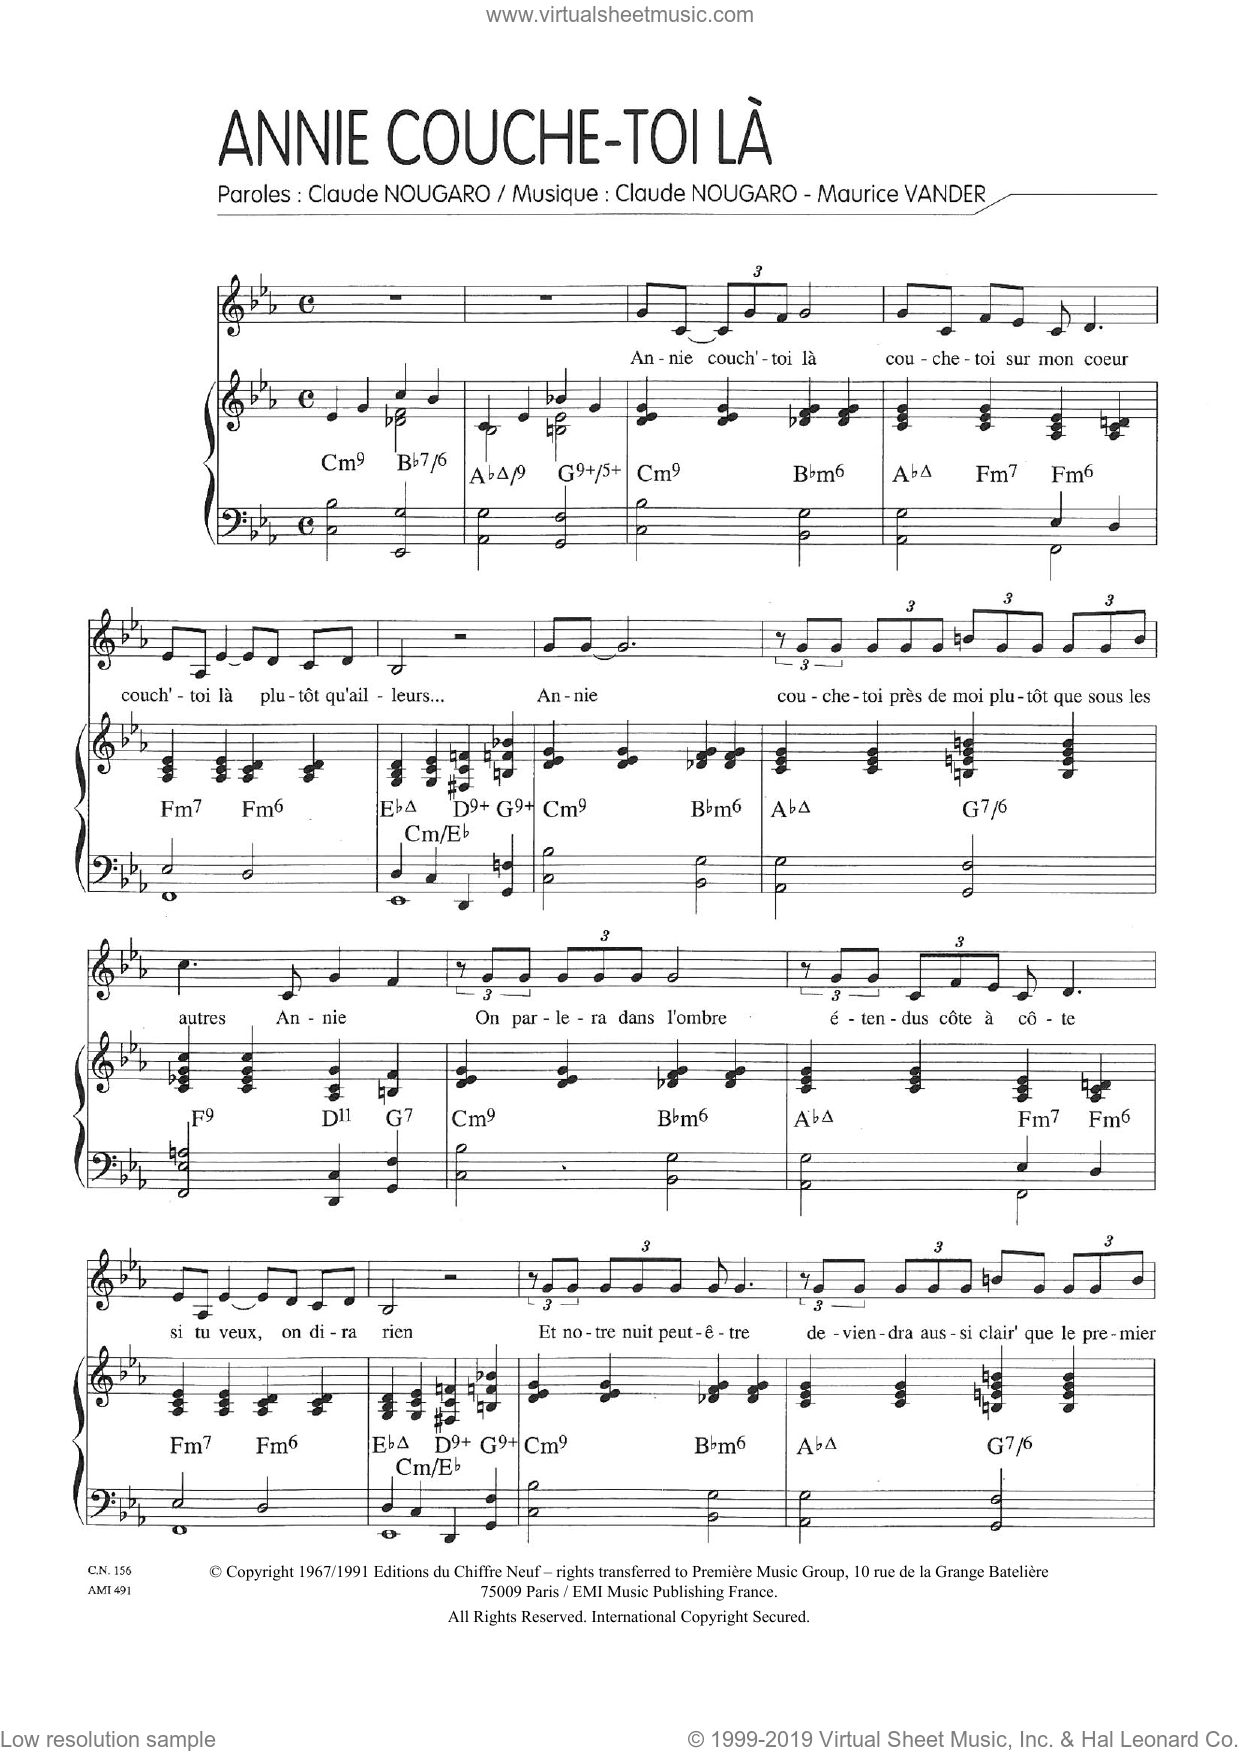 Annie Couche-Toi La sheet music for voice and piano by Maurice Vanderschueren